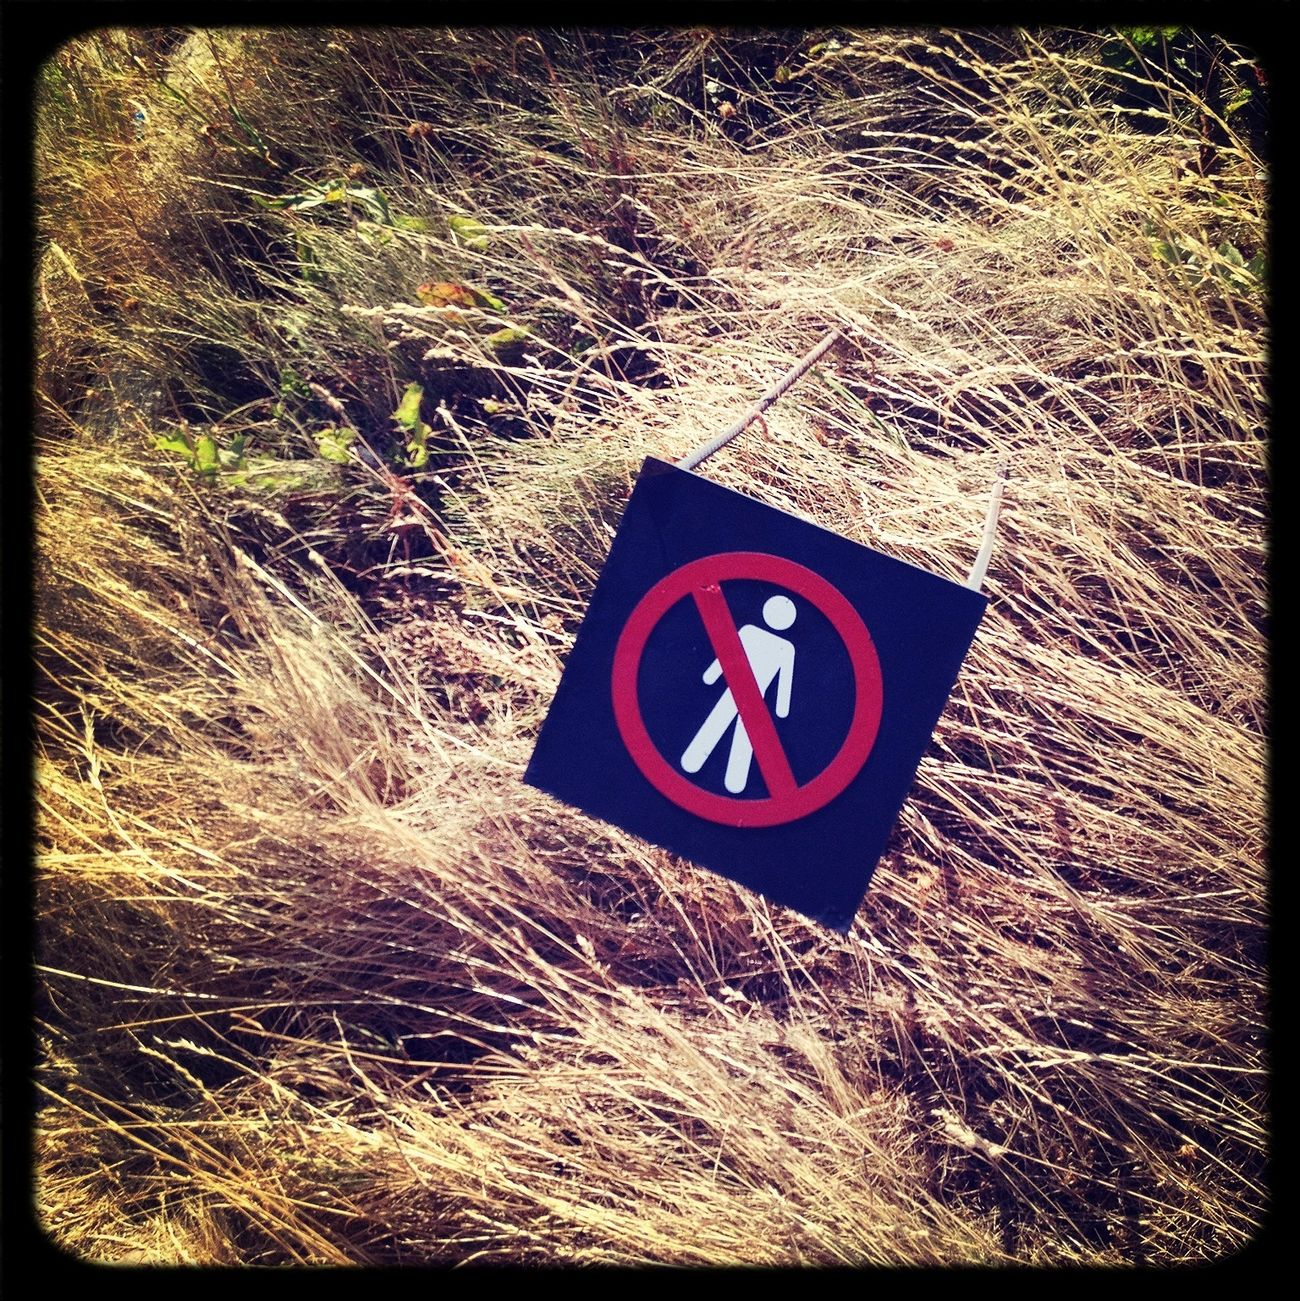 No humans allowed.